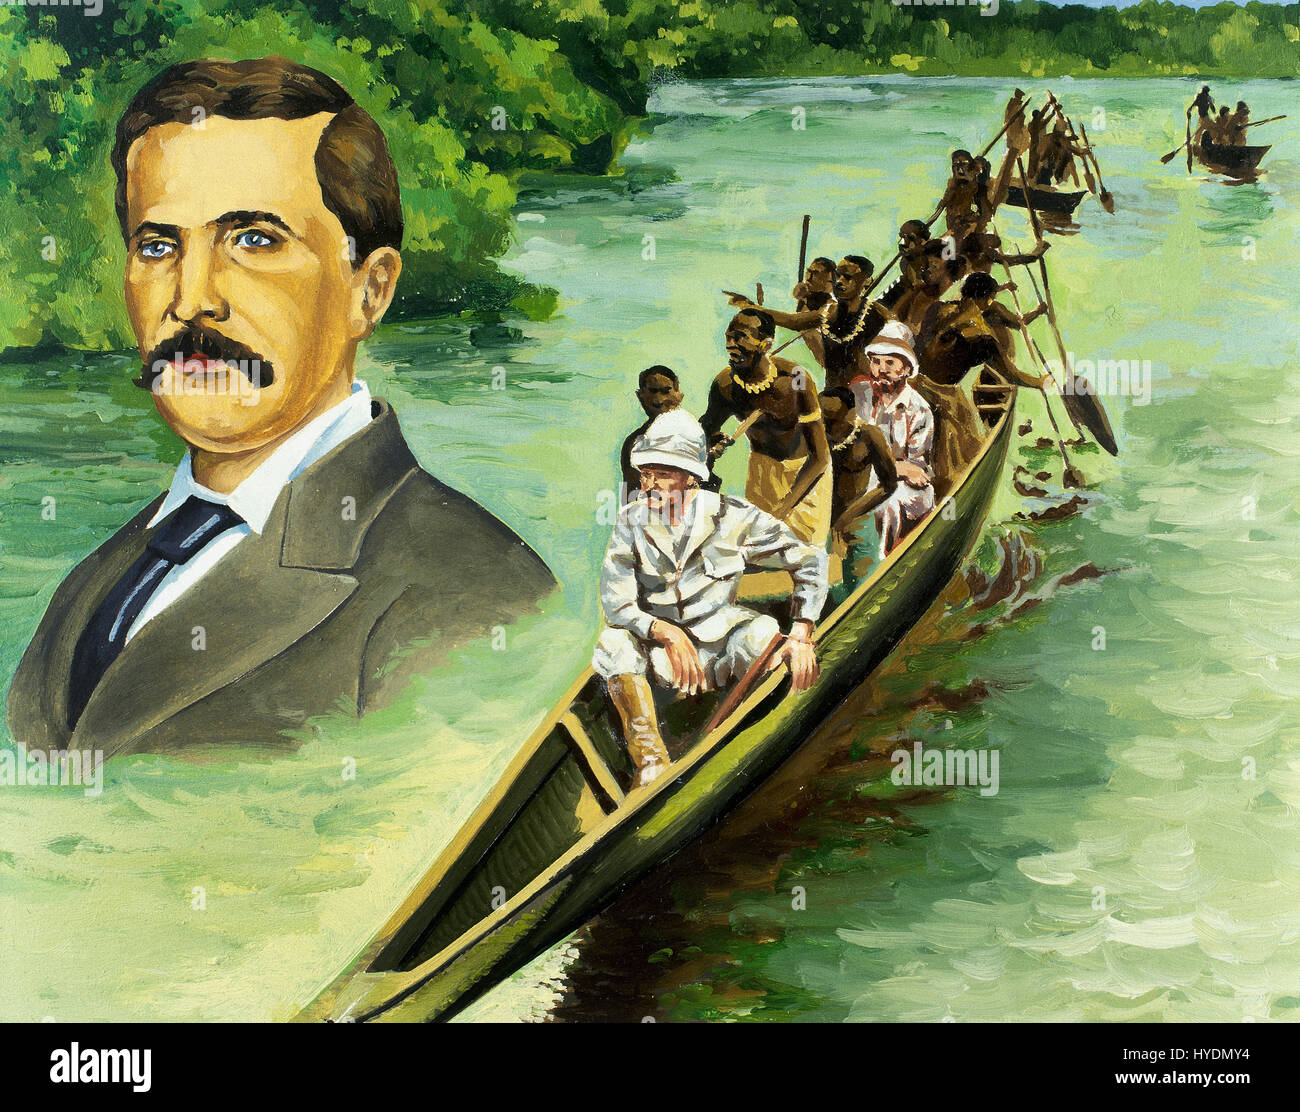 Africa. The British explorers Henry Morton Stanley (1799-1869) and David Livingstone (1813-1873) in a canoe on the - Stock Image